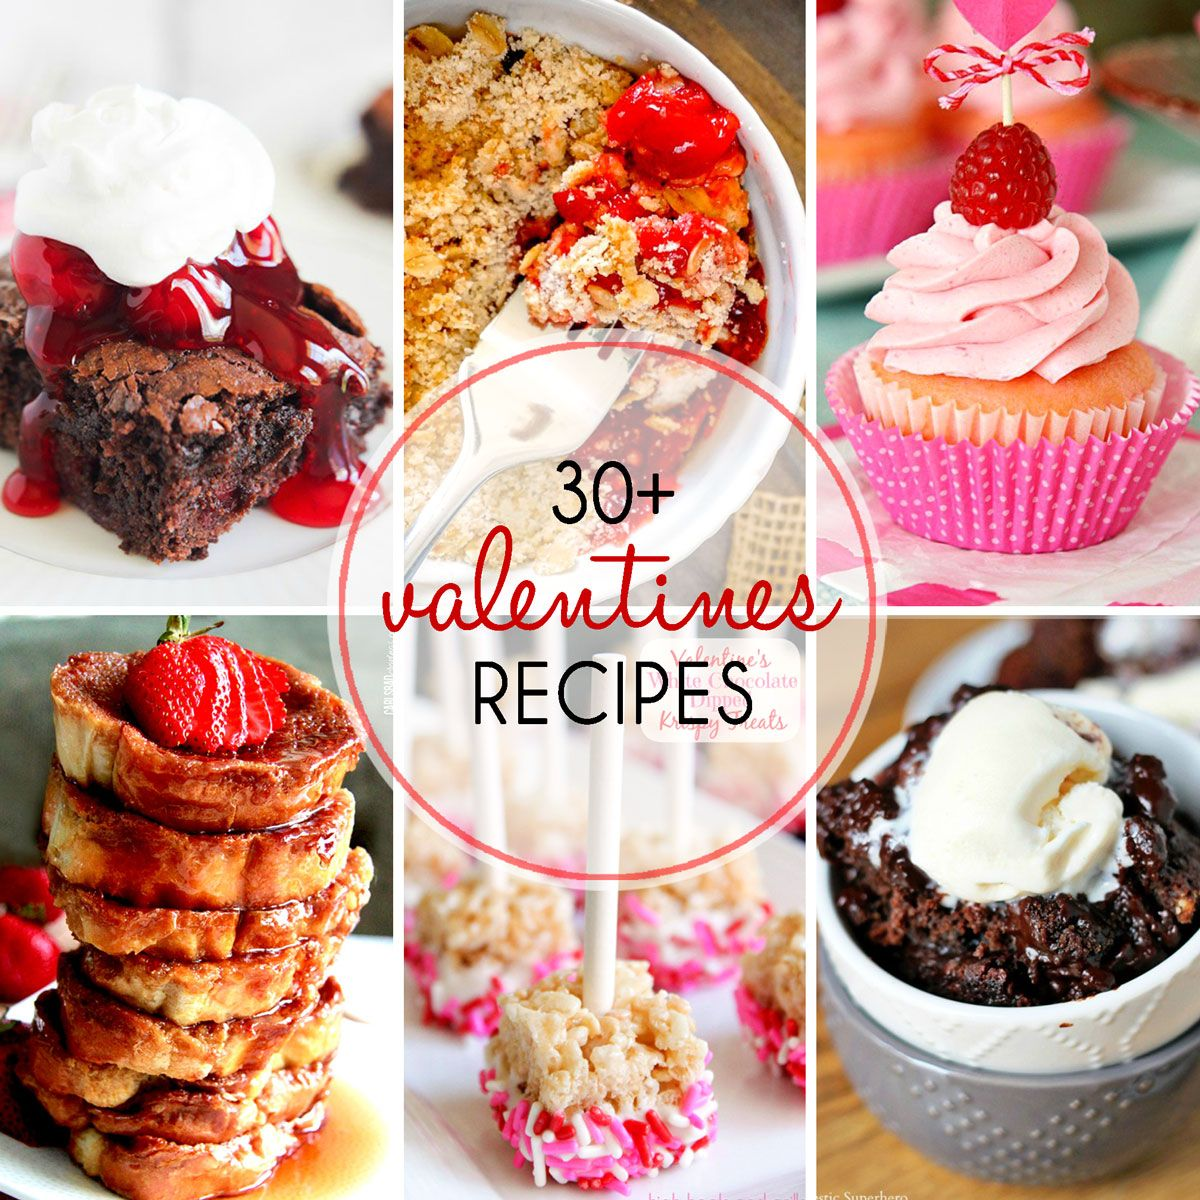 30+  Valentine's Day Desserts \ My Suburban Kitchen - Featured at the Home Matters Linky Party 120